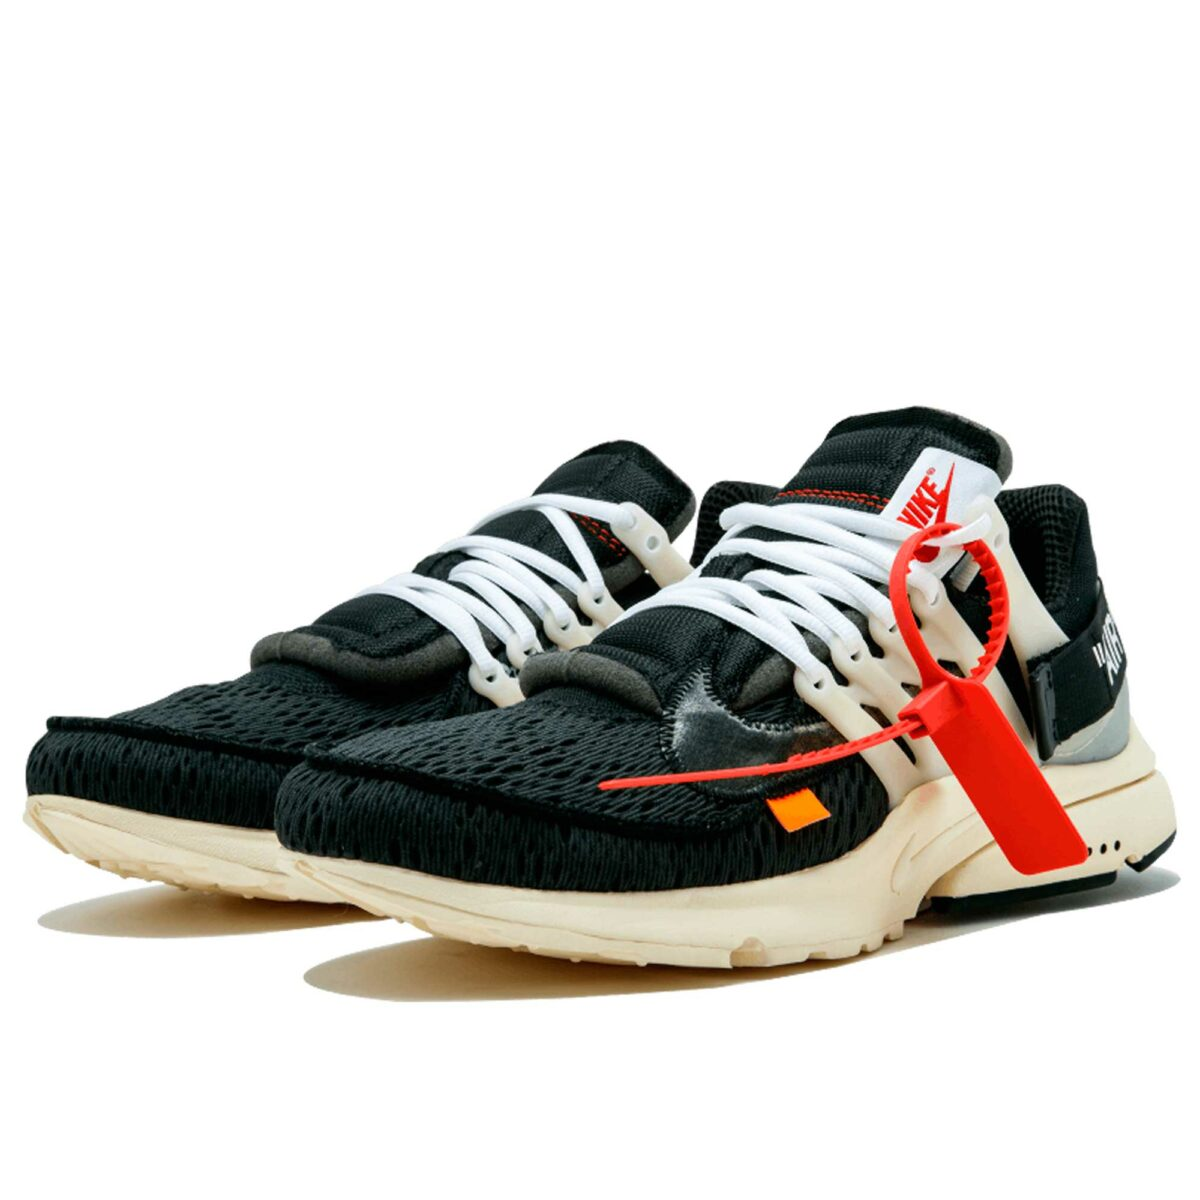 off white x nike air presto black AA3830_001 купить